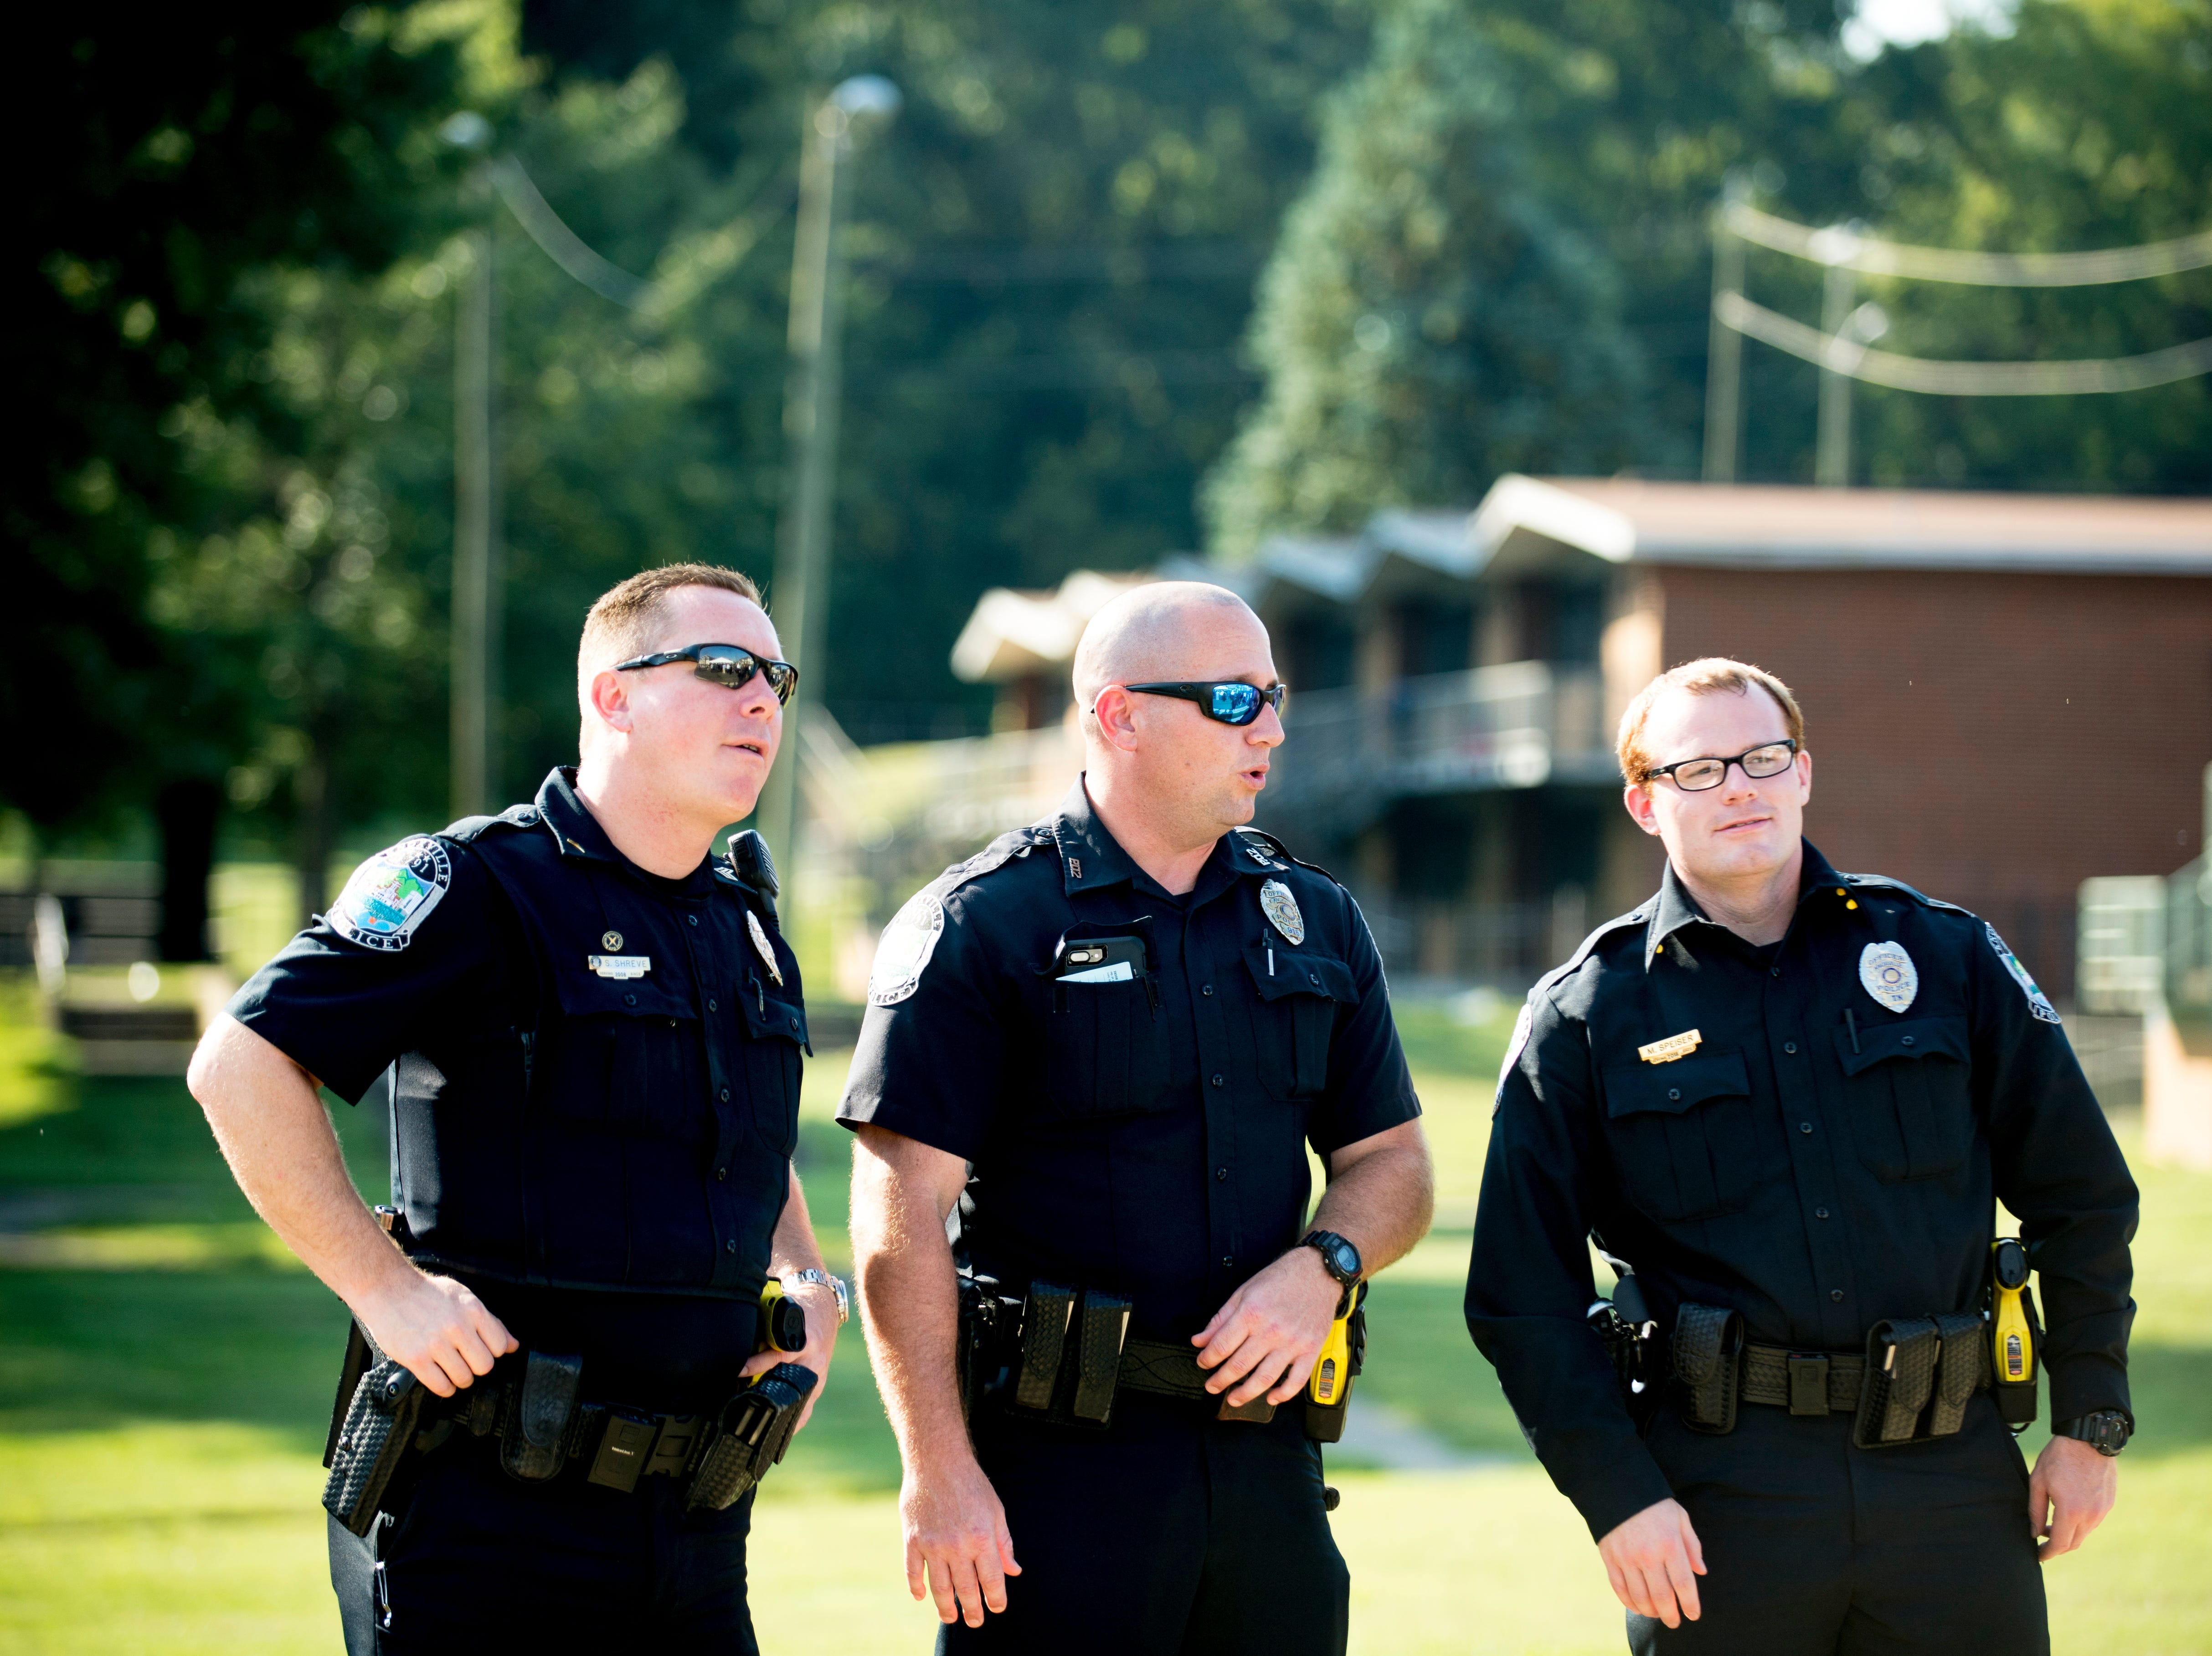 Knoxville Police Department officers chat during the Five Points Phase 2 ribbon cutting ceremony in Knoxville, Tennessee on Wednesday, September 19, 2018. The 10-building, 84-unit affordable housing complex has been part of Mayor Rogero's focus on affordable housing.